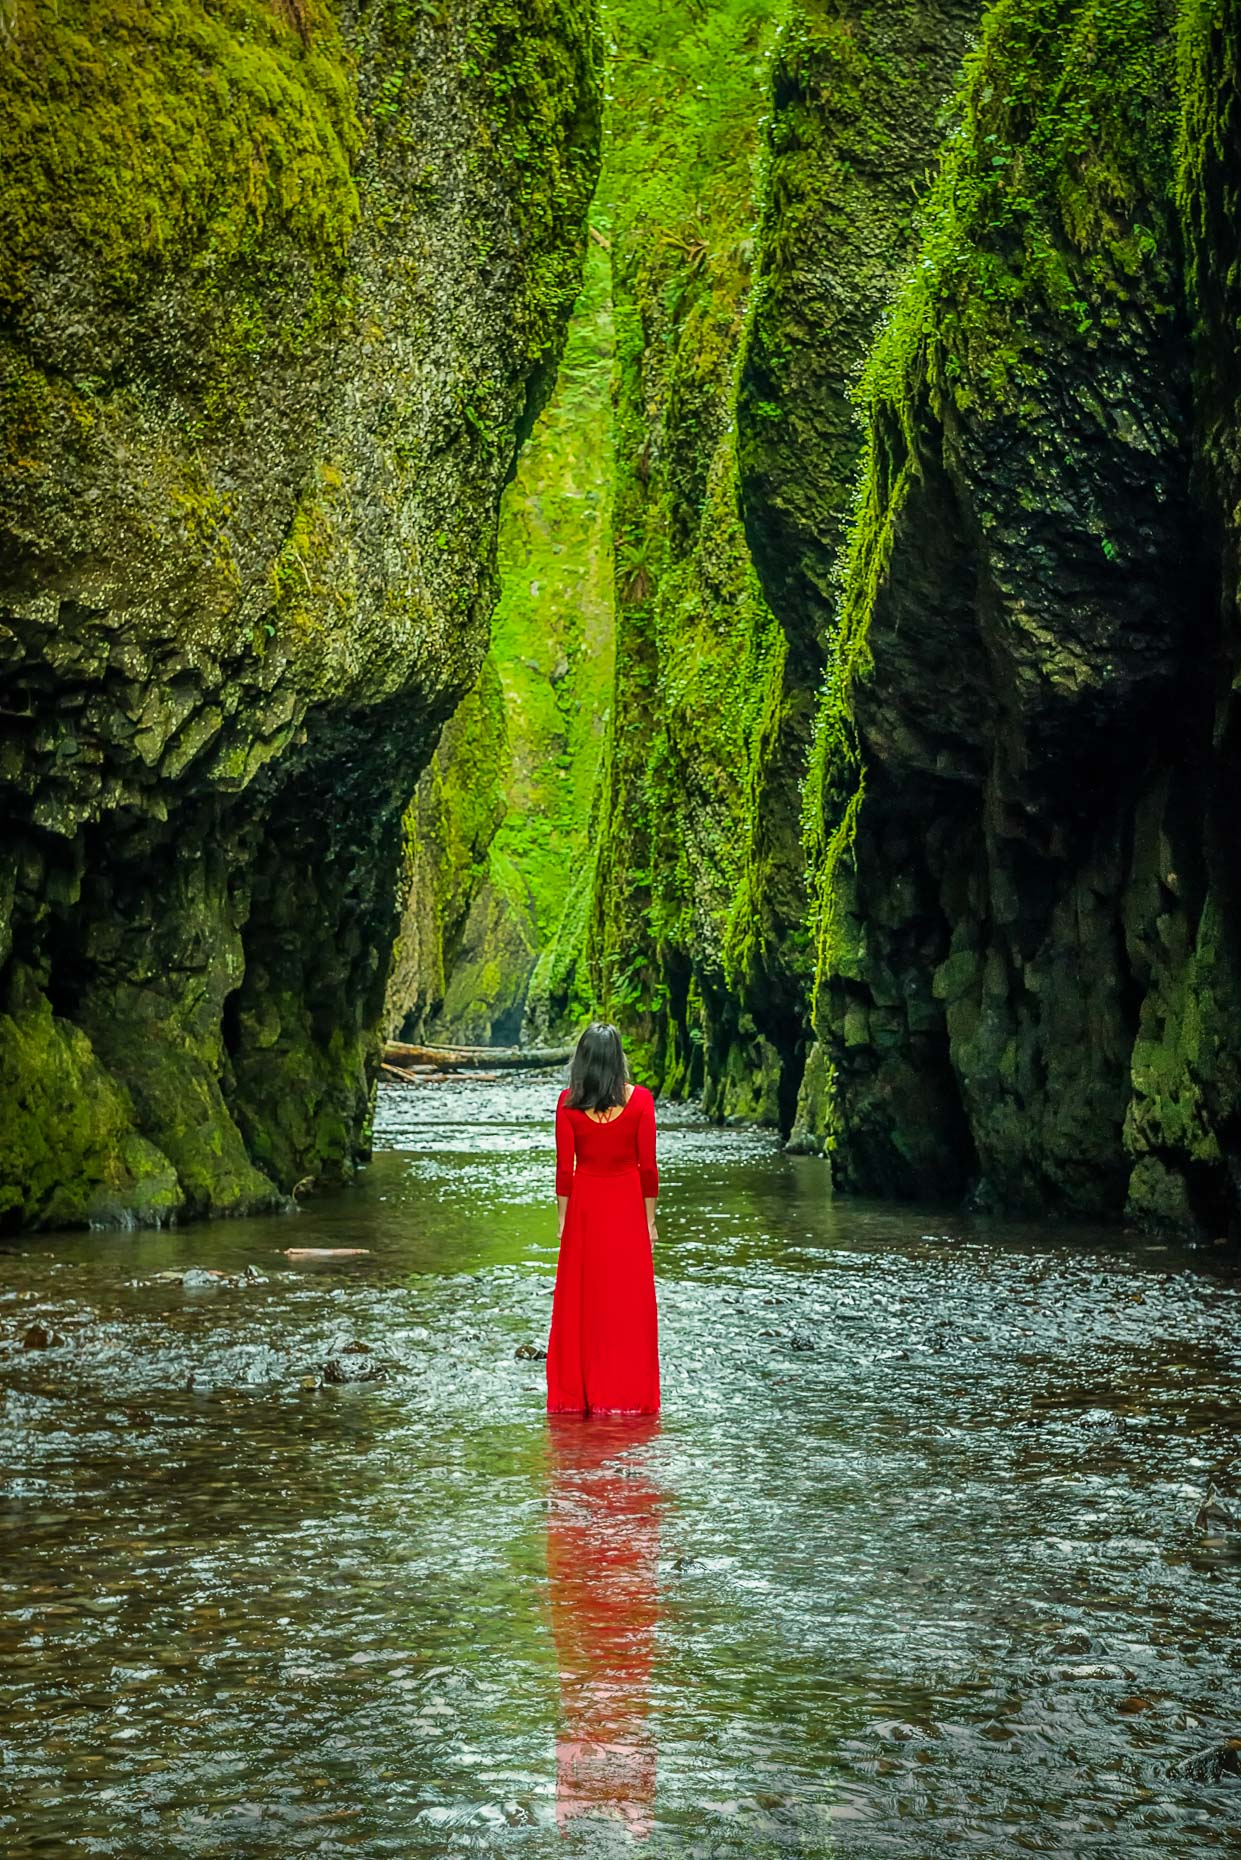 Lady in Red, Oneanta Gorge